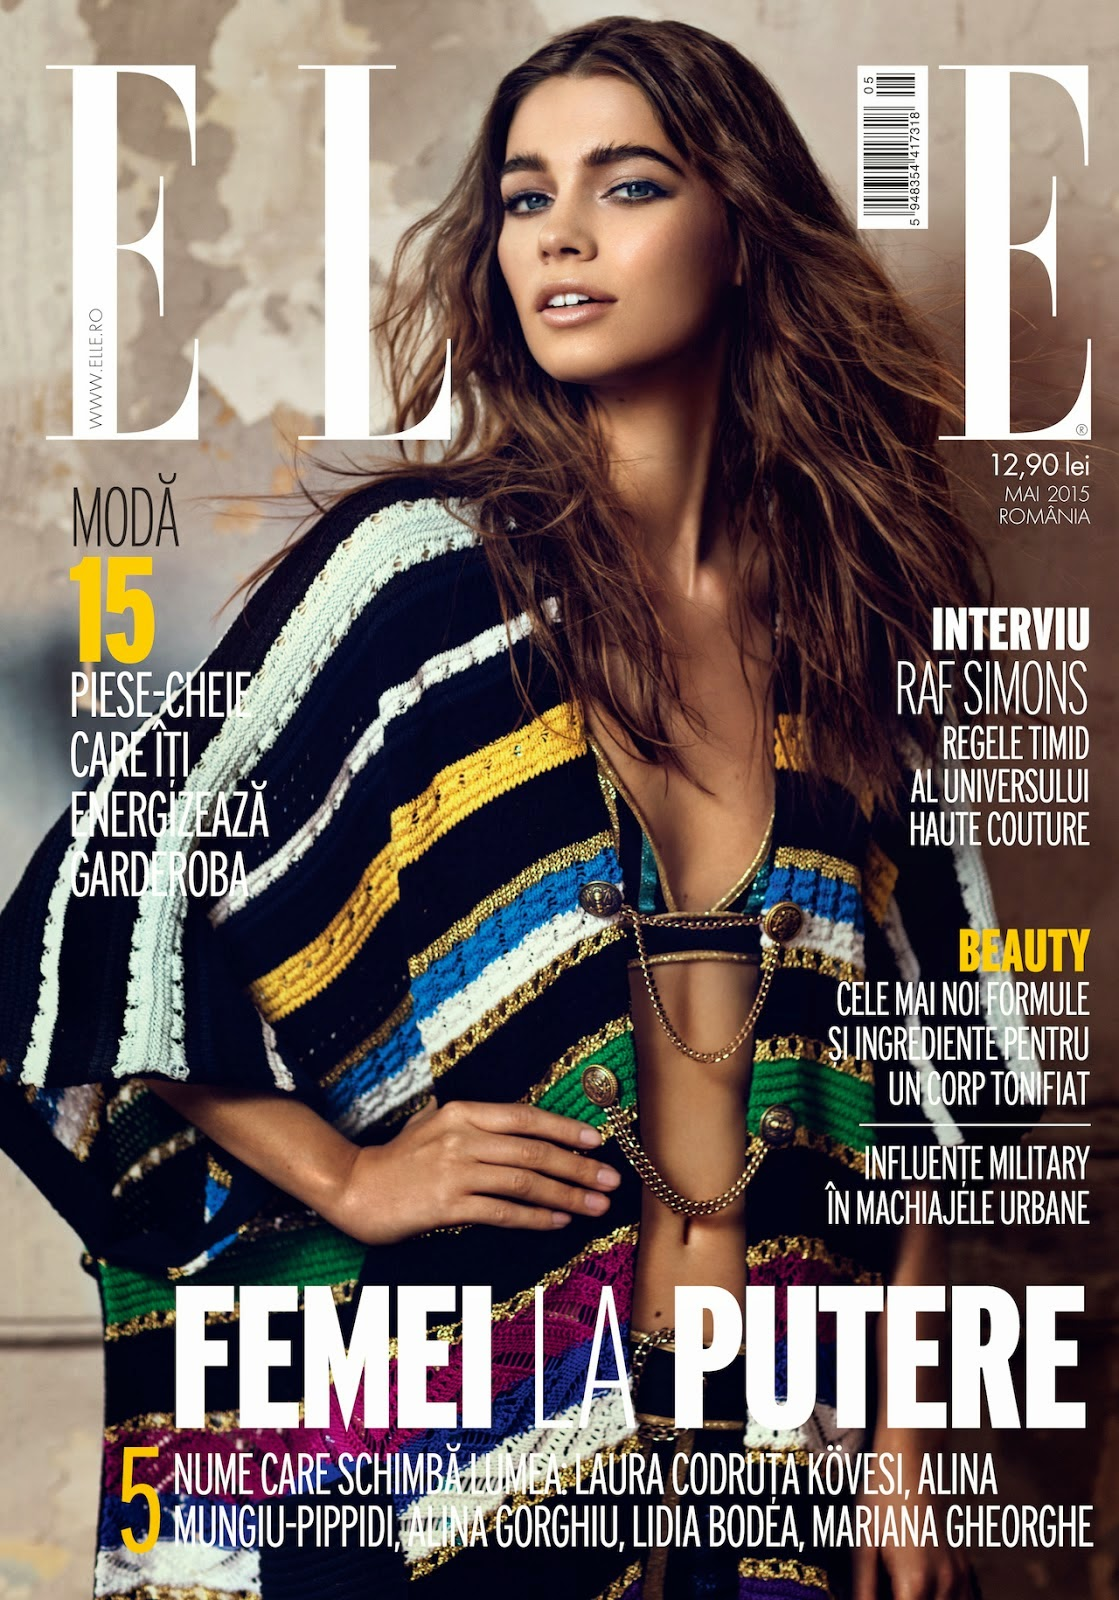 Fashion Model @ Iulia Cirstea - Elle Romania, May 2015